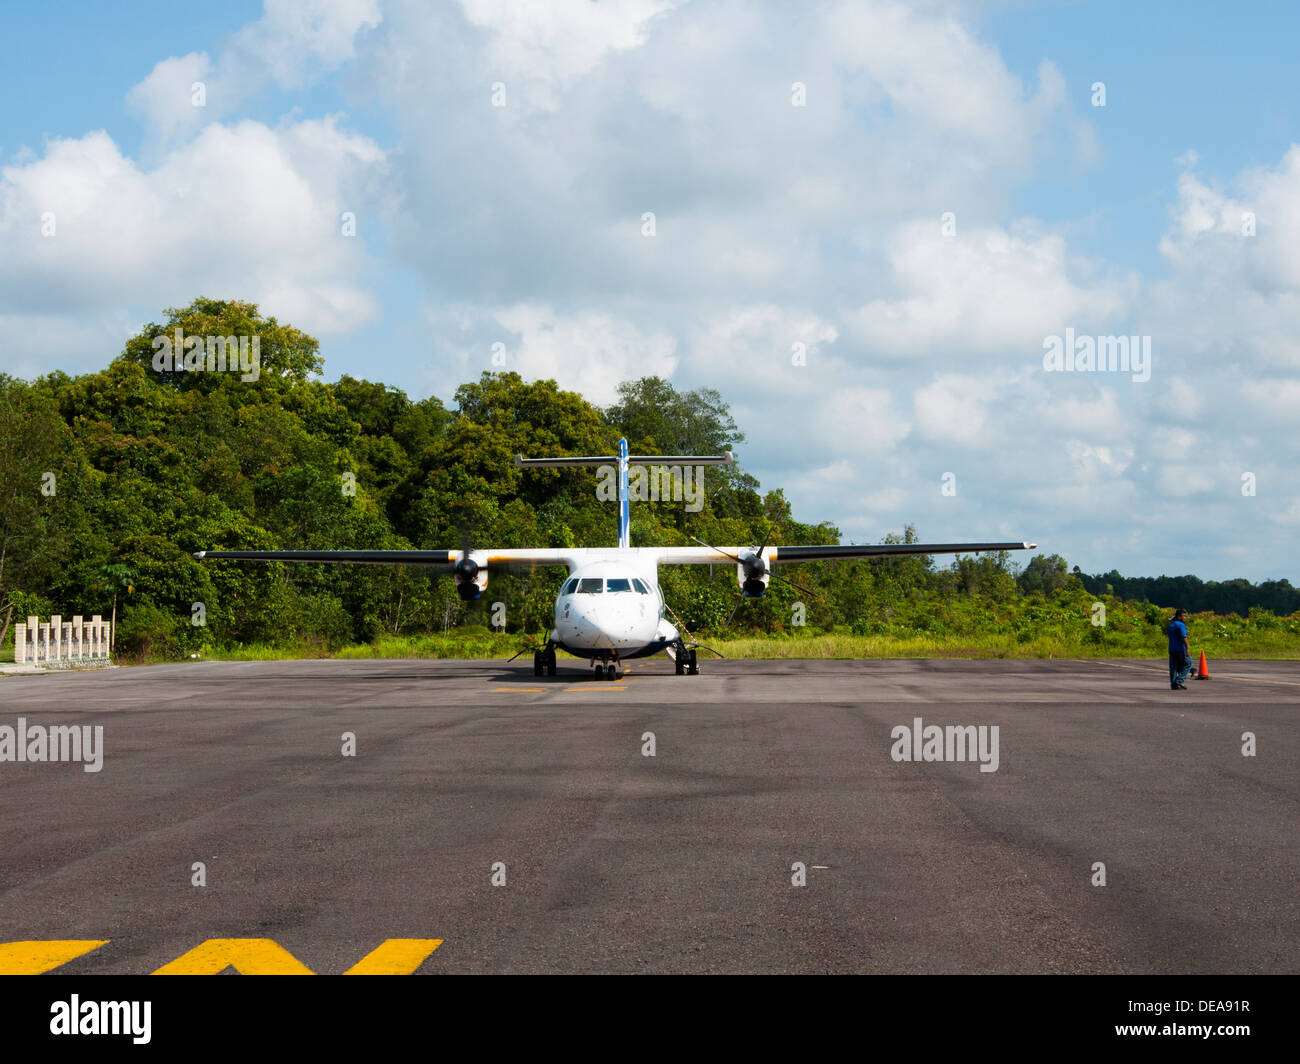 Small airplane stopped at Kalimantan airport - Stock Image